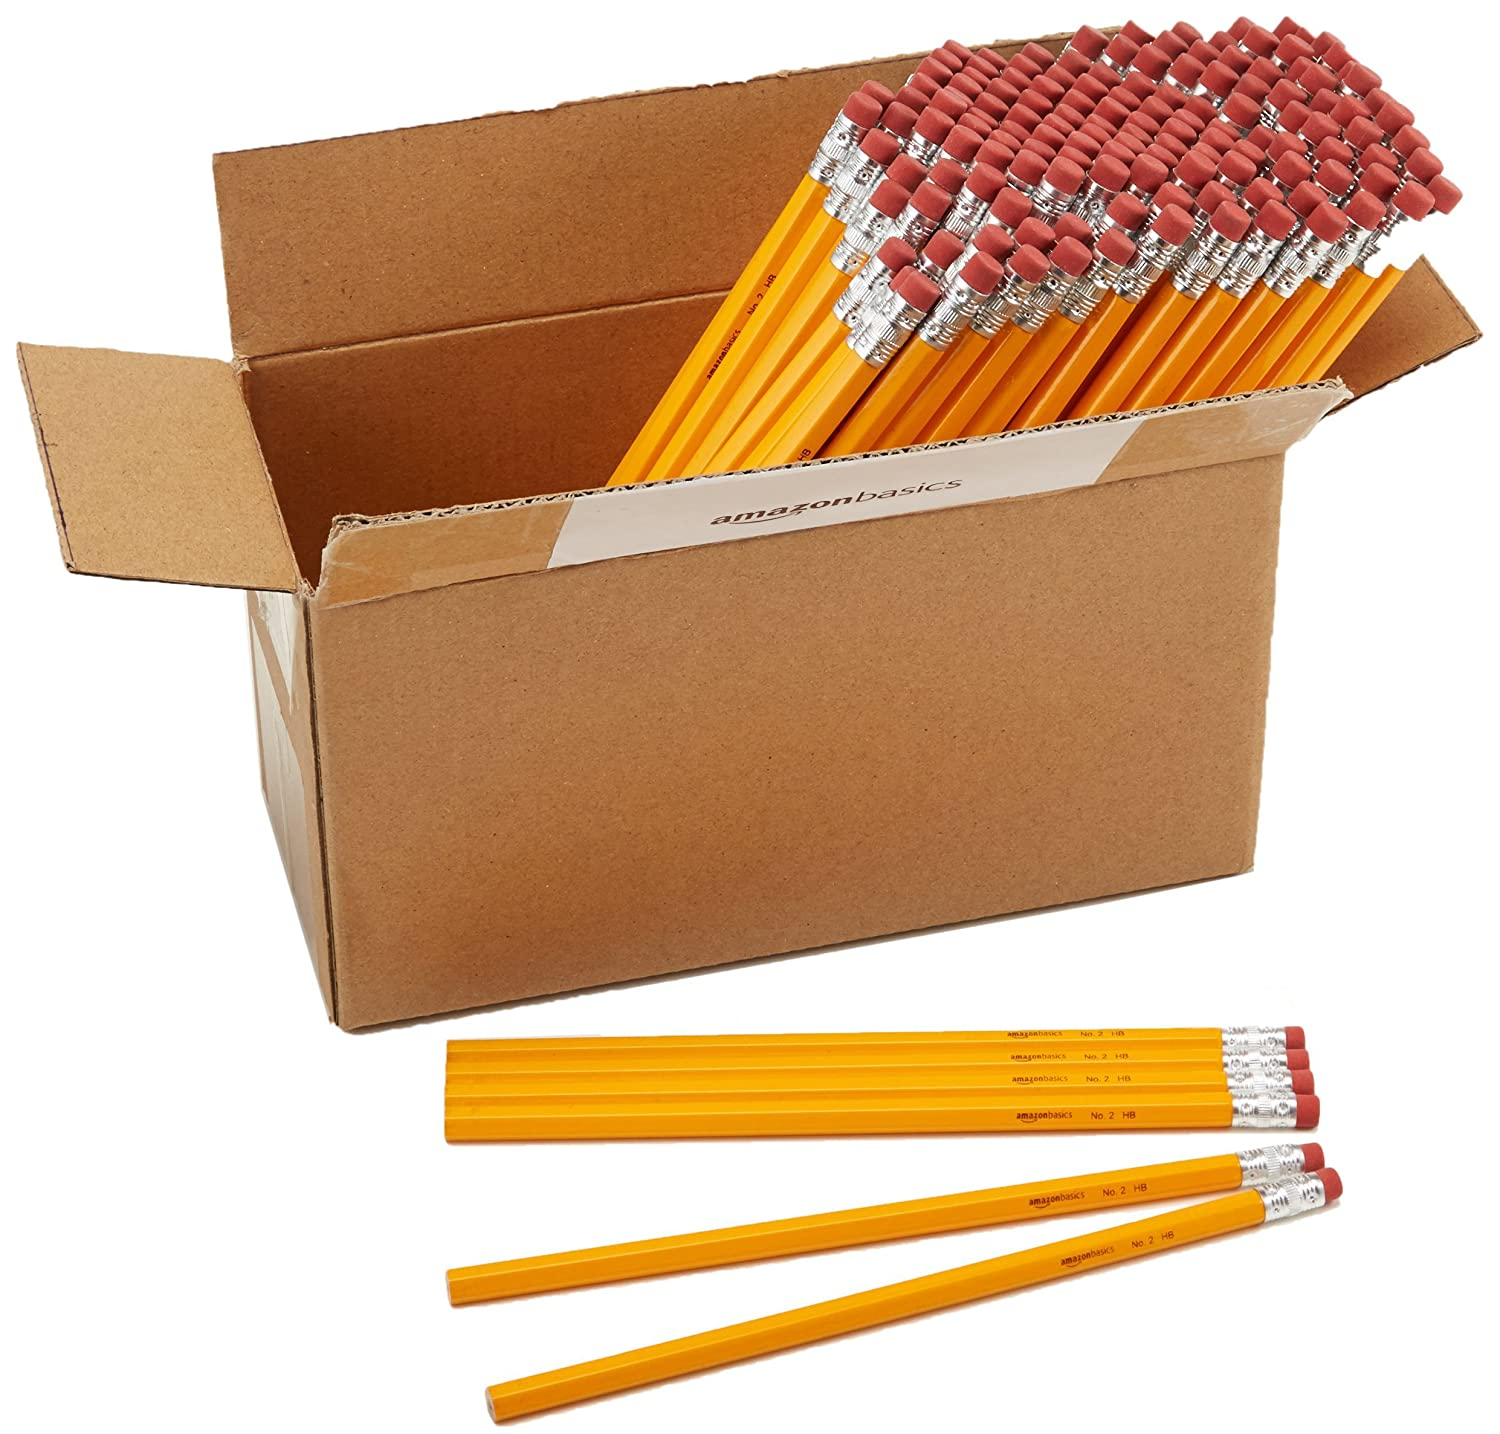 AmazonBasics Wood-cased 2 HB Pencils –  Box of 144 at Rs.299